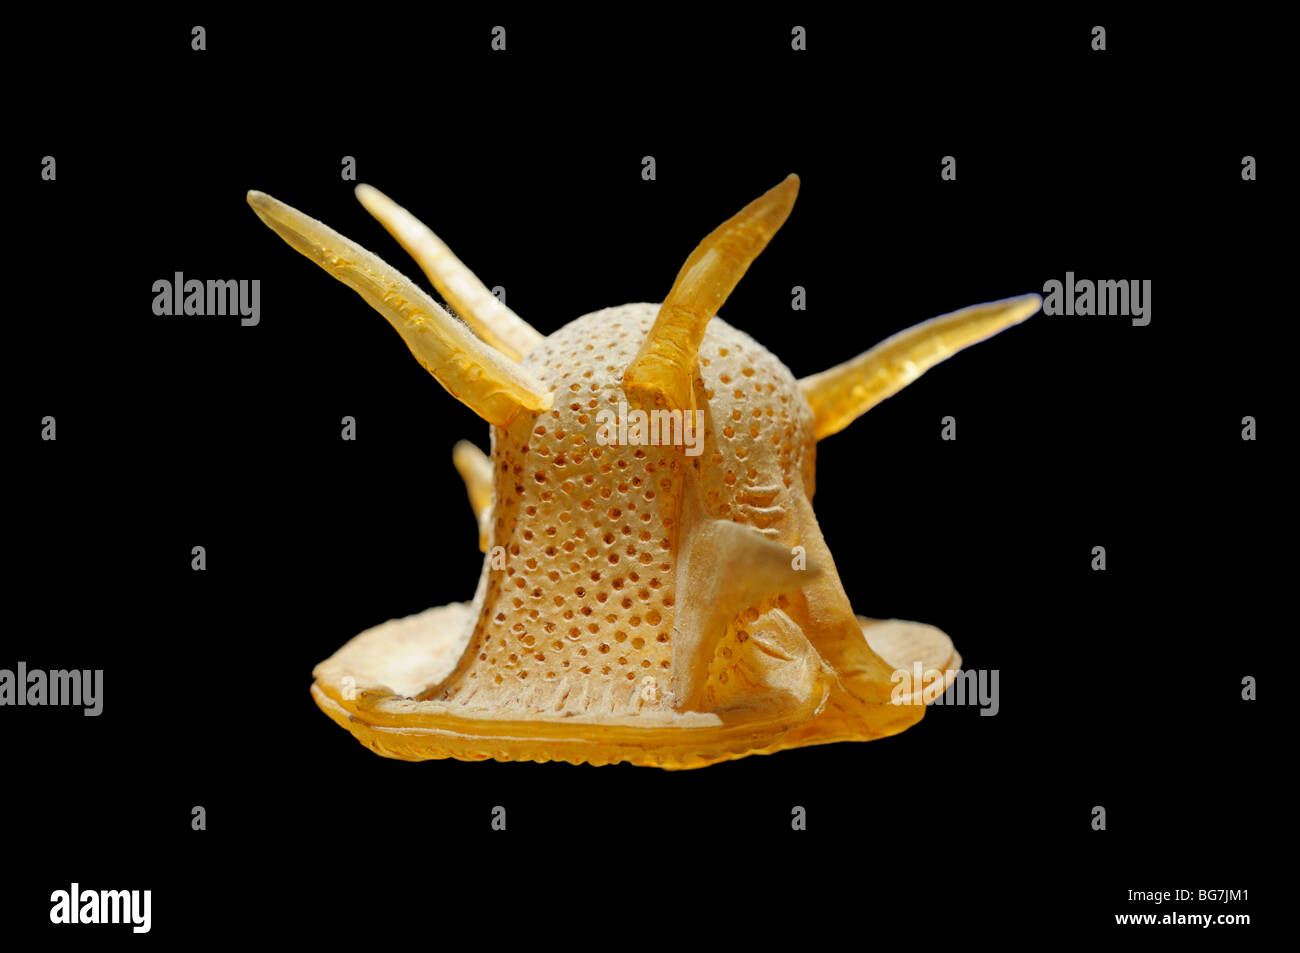 Dinoflagellate model, Ceratocorys horrida, magnified 1,000 times Stock Photo